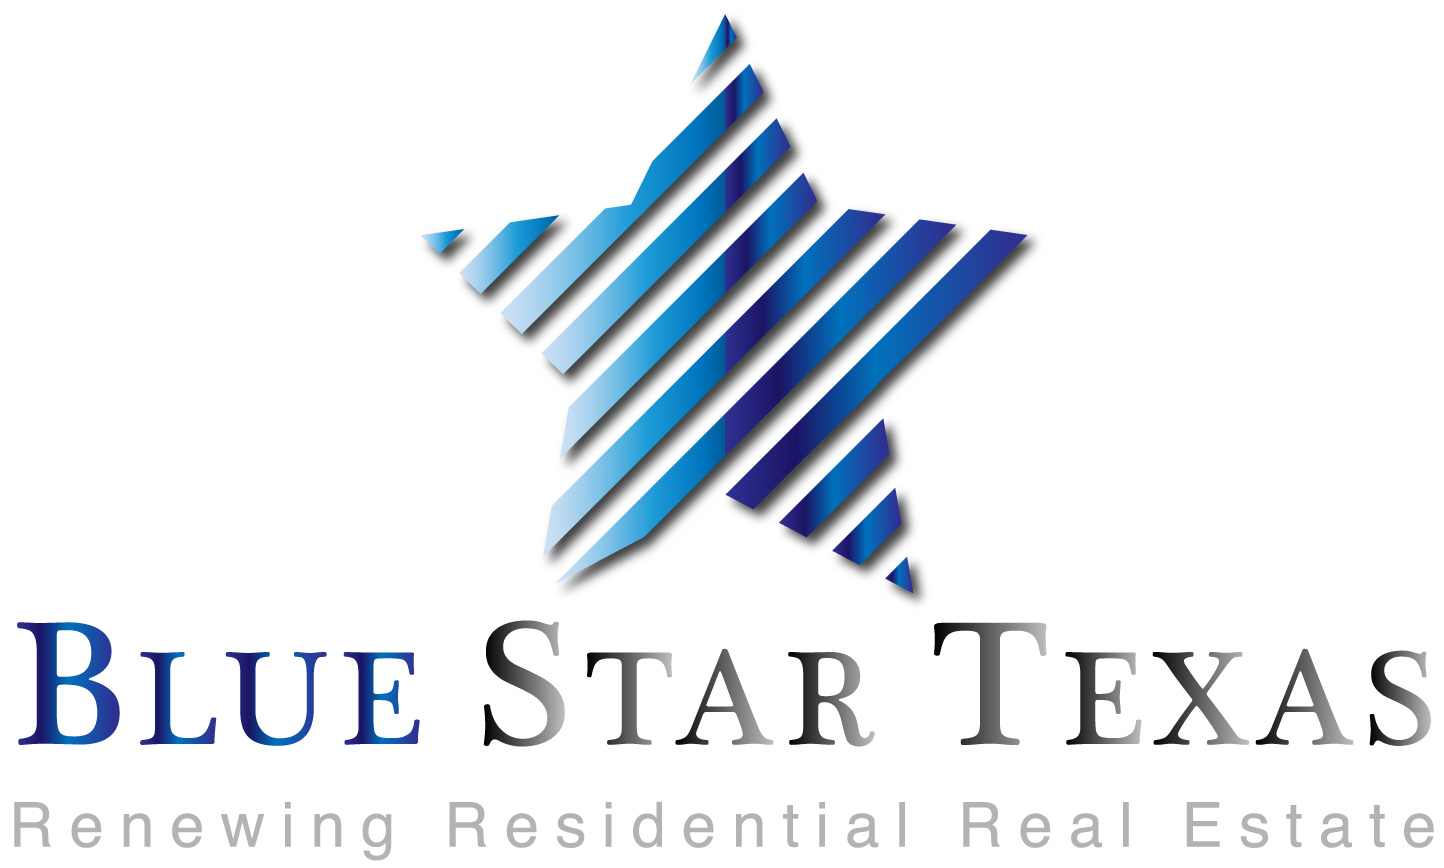 Blue Star Texas